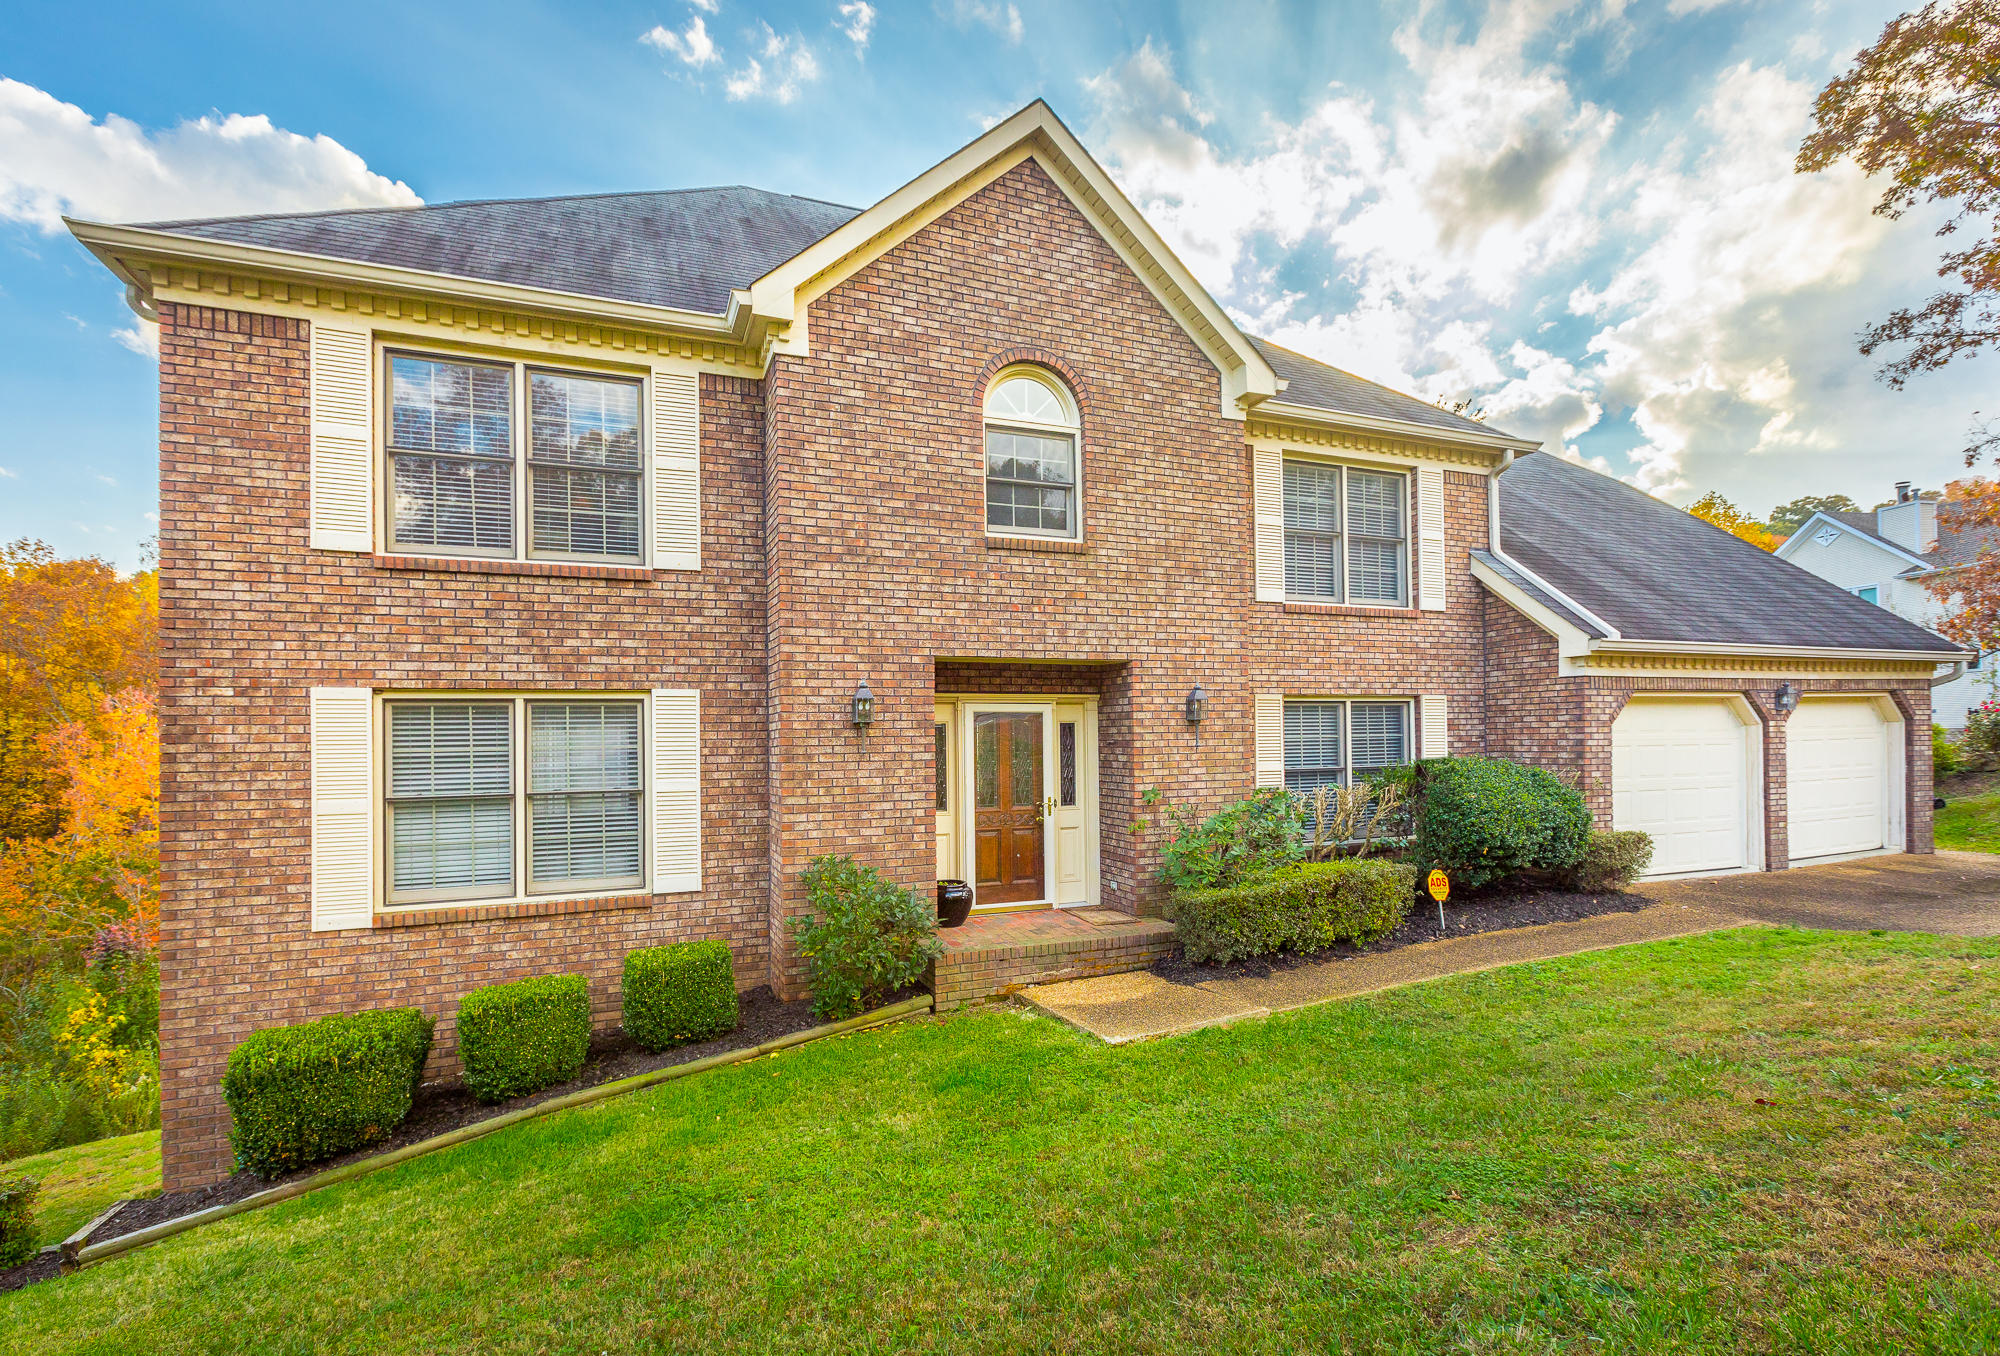 6643 Declaration Drive Chattanooga #homeforsaleinchattanooga, #ChattanoogaHomeForSale, #ThePaulaMcDanielGroup, #Chattanoogarealestateforsale, #Chattanoogarealestateforsale, #allbrickhomeforsale#, ThePaulaMcDanielGroup, #homeforsalewith - The Paula McDaniel Group With Real Estate Partners Chattanooga LLC Luxury homes for sale in Chattanooga and N. GA by The Paula McDaniel Group. Chattanooga homes and land for sale by The Paula McDaniel Group with Real Estate Partners Chattanooga LLC